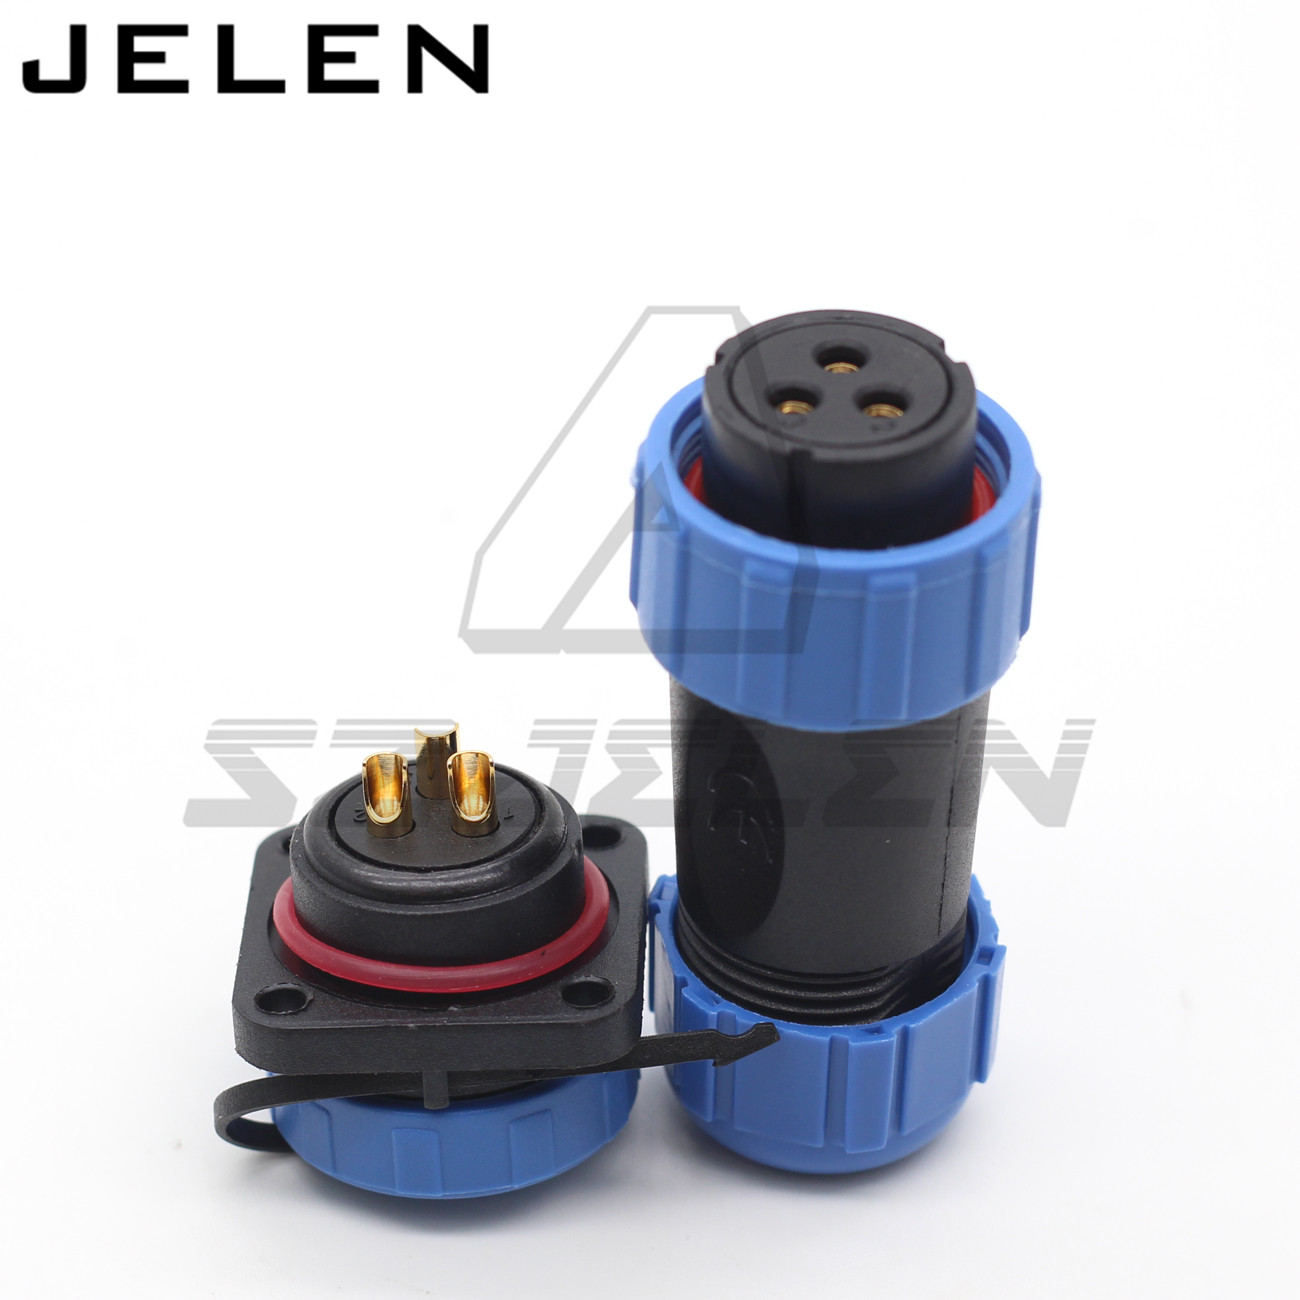 SP21 waterproof connector plug and socket with flange 4 hole3 pin IP68 Automotive connector power cable connector|Connectors| |  - title=